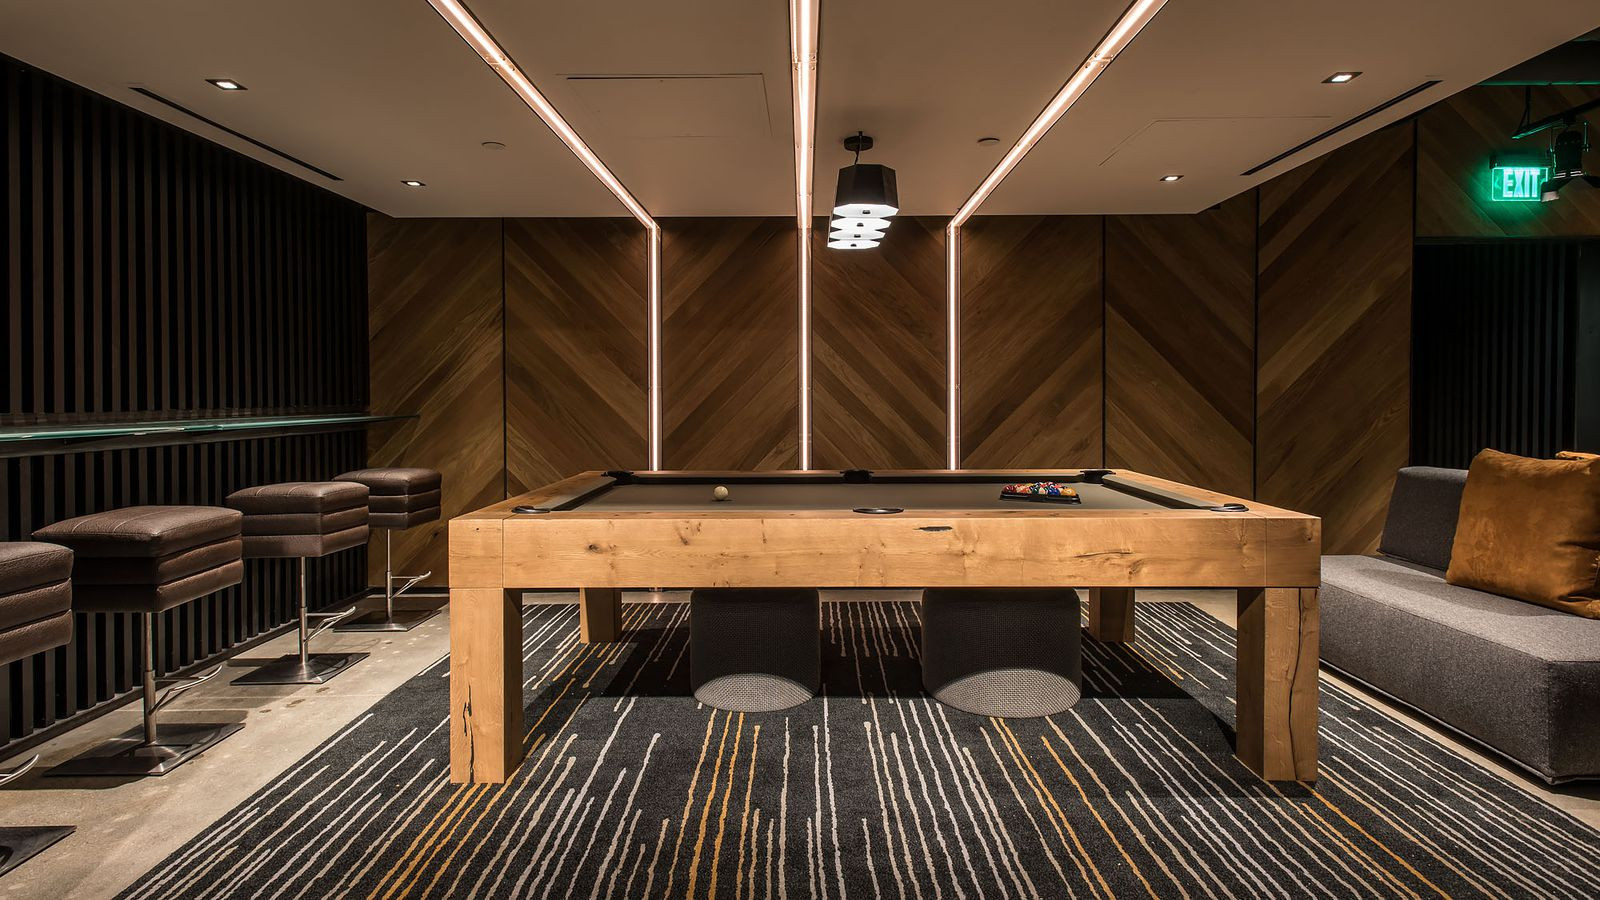 Best ideas about Ace Game Room . Save or Pin It s Game at West LA s Fun New Double Take Eater LA Now.